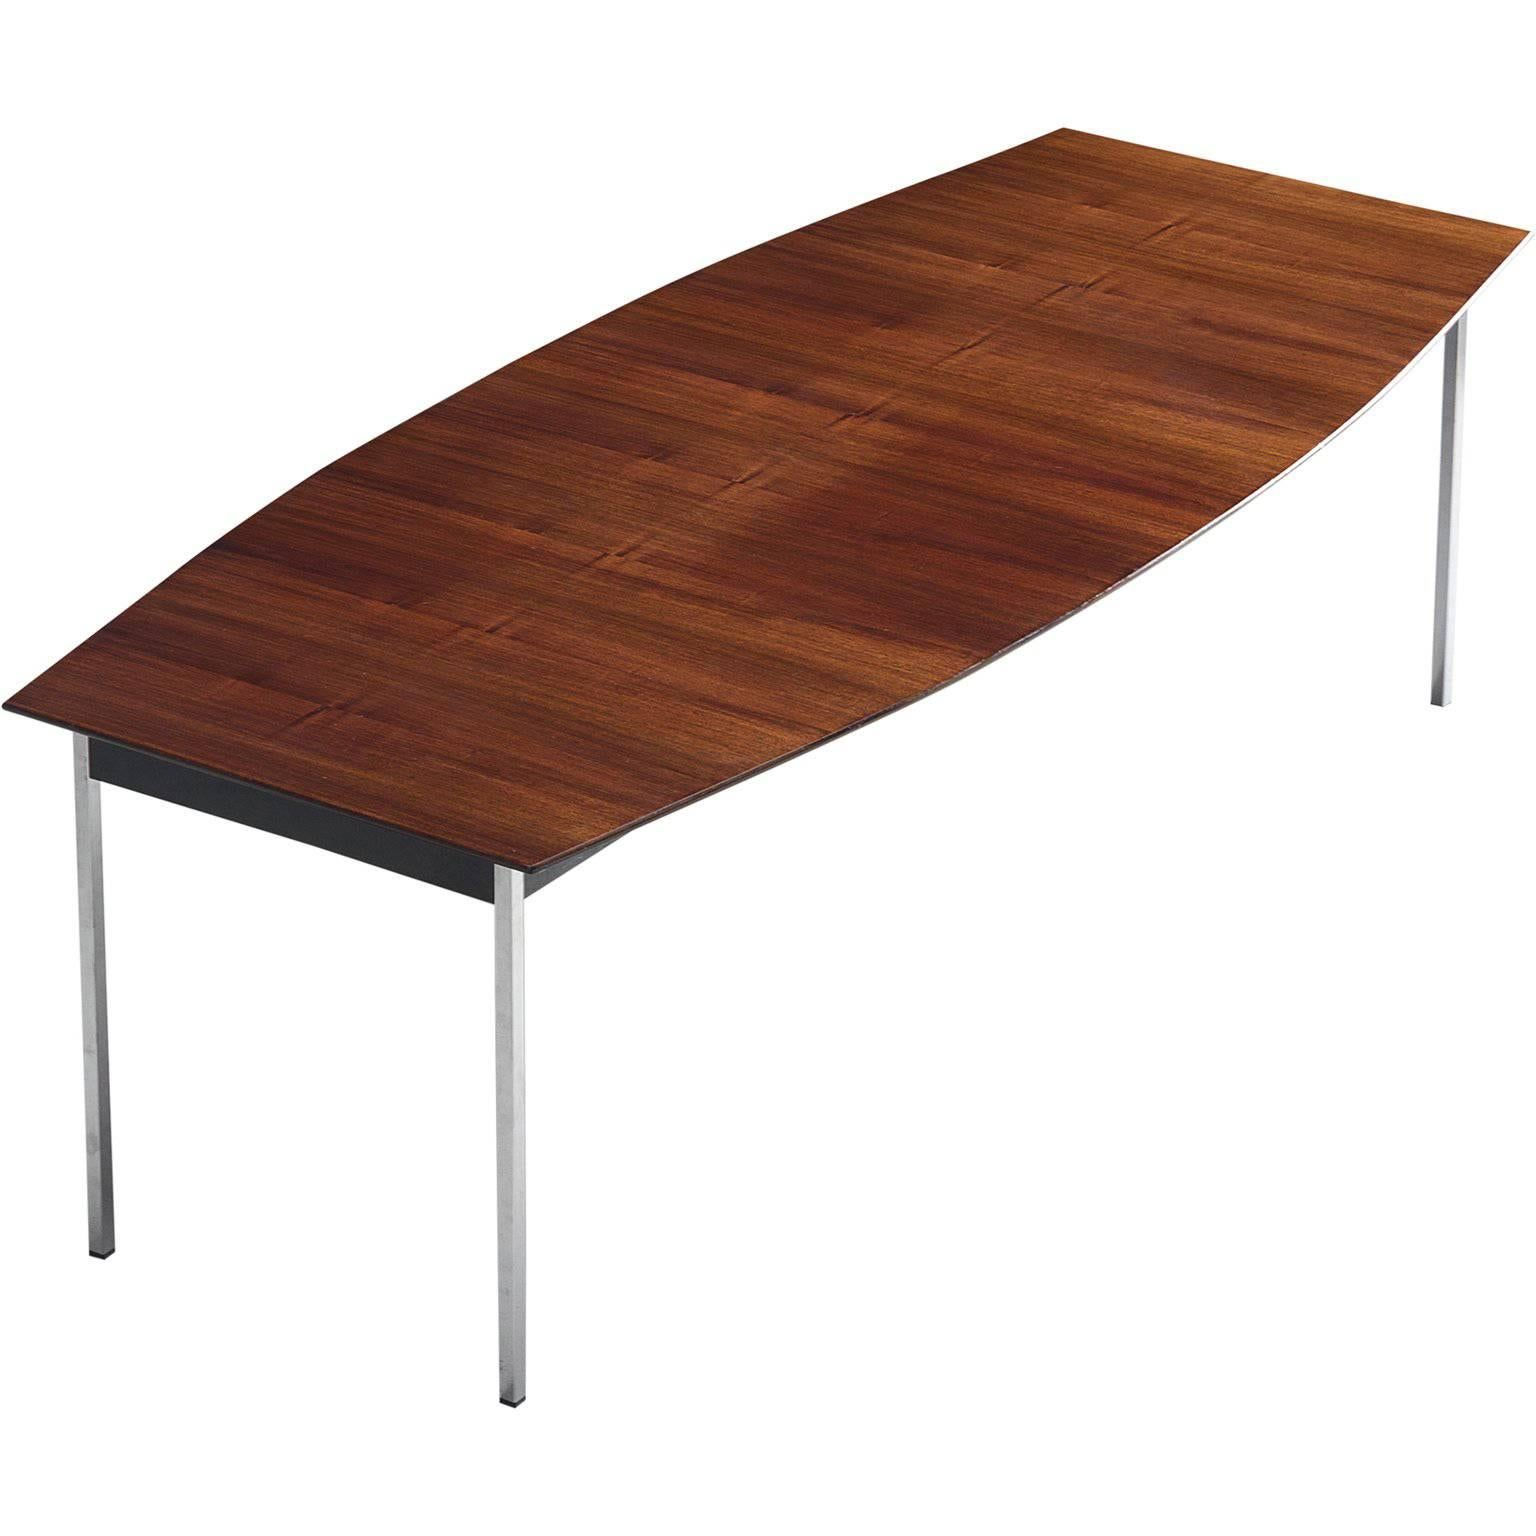 Alfred Hendricks Boat Shaped Rosewood Dining Table 1